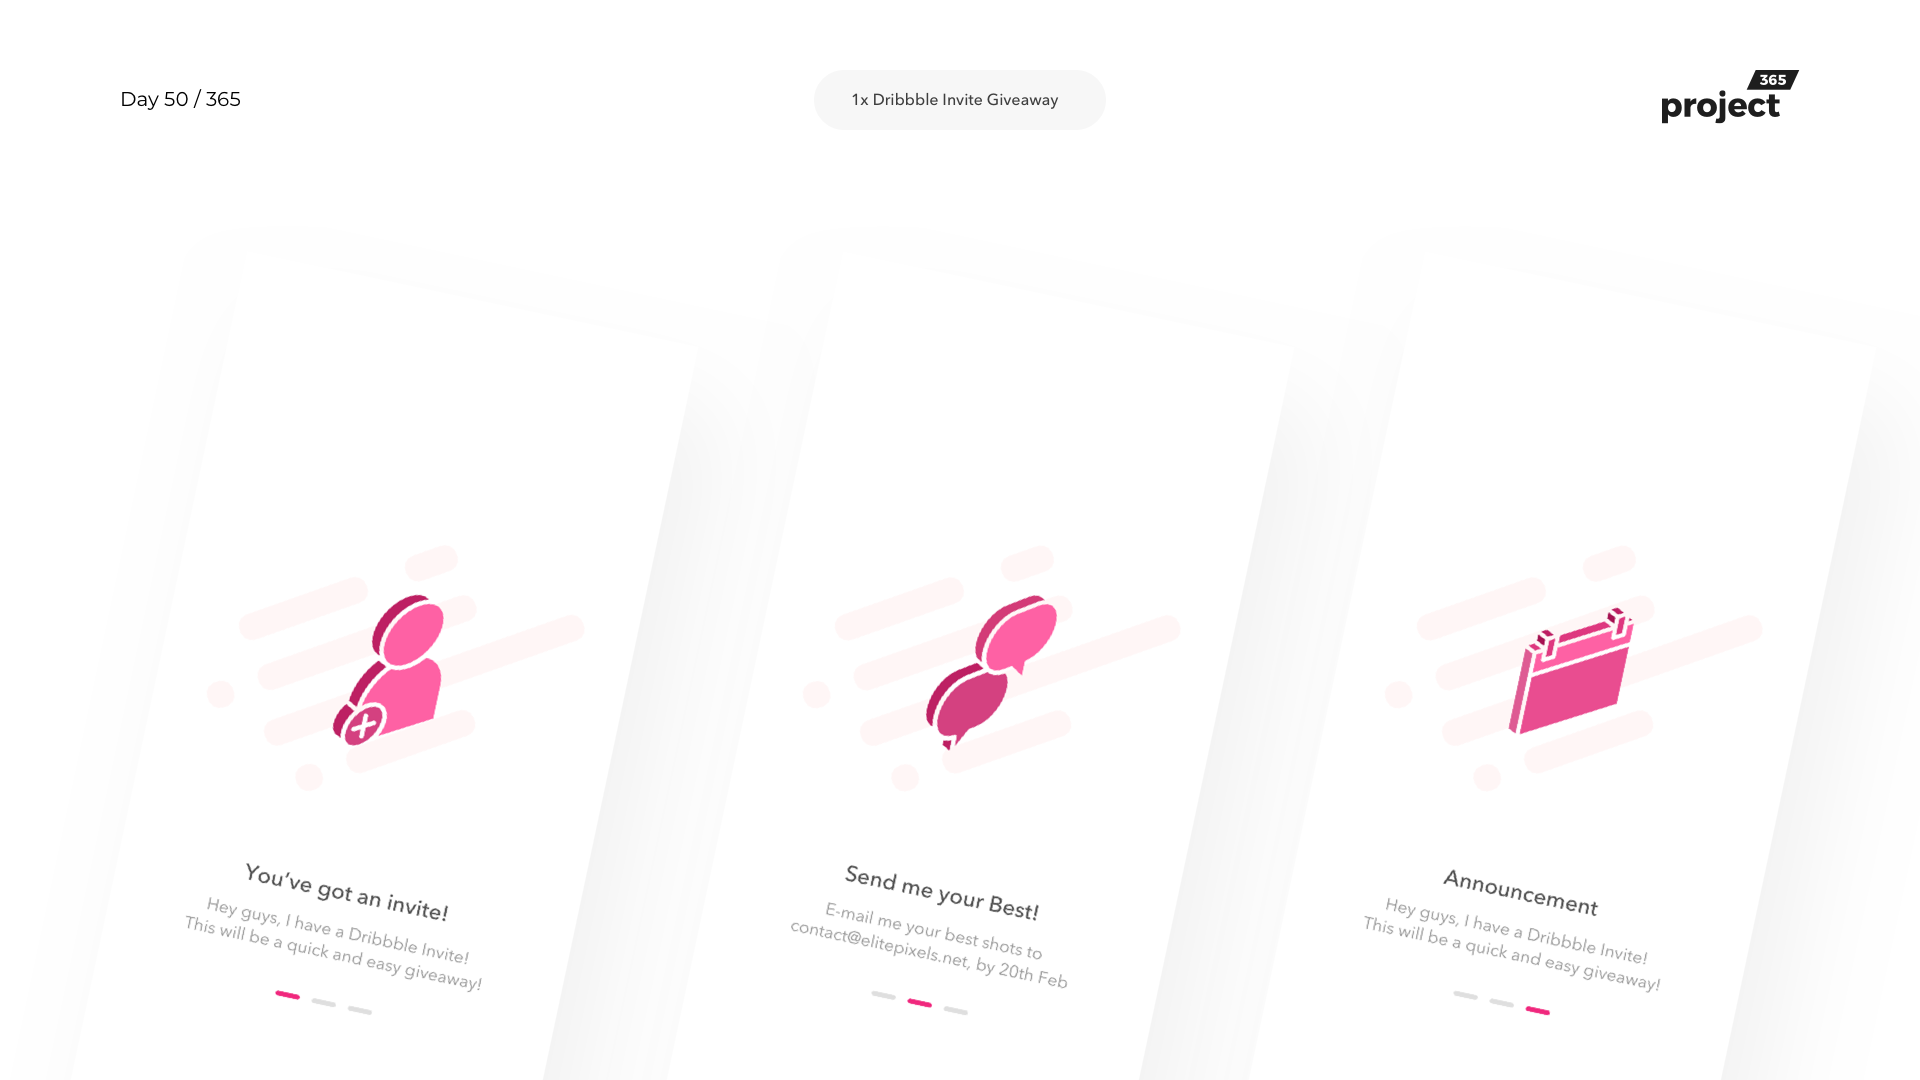 Day 50 – 1x Dribbble Invite Giveaway